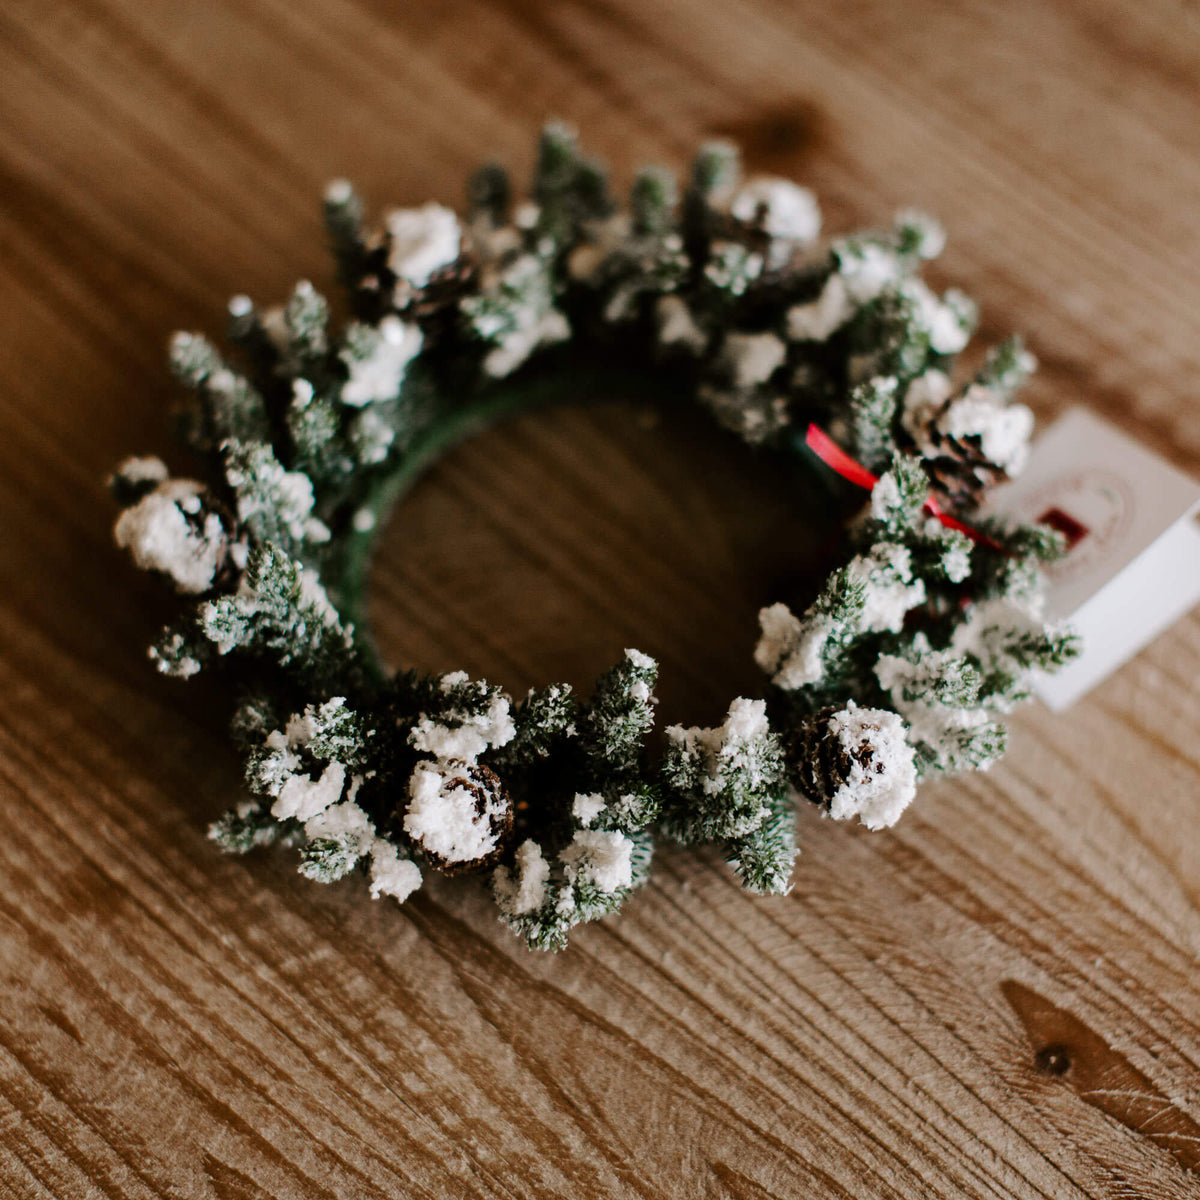 A small 4 inch diameter faux pine and pinecone wreath with clumps of faux snow for holiday decorating